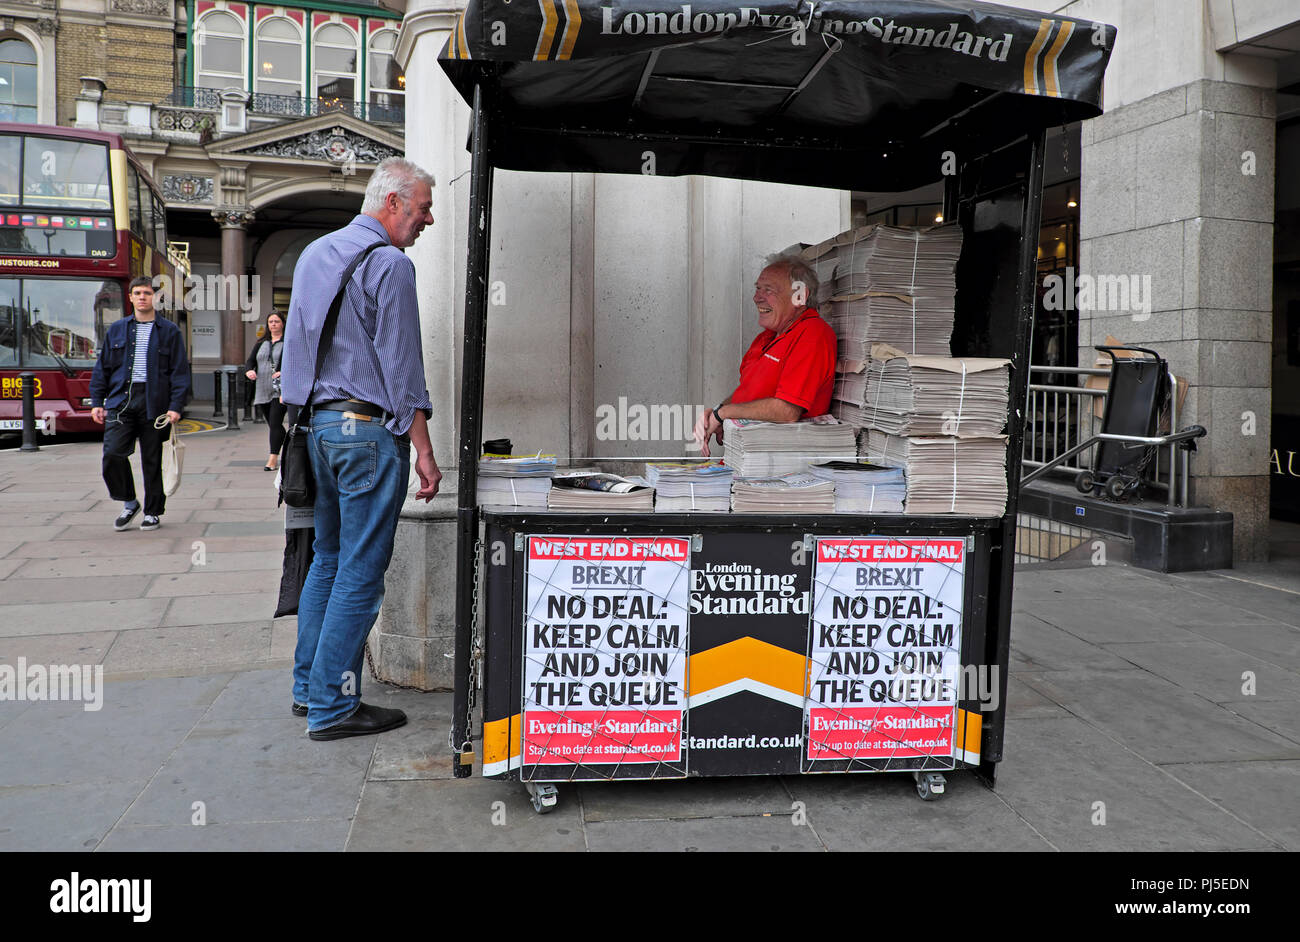 Evening Standard newspaper headline on poster 'Brexit - NO DEAL KEEP CALM AND JOIN THE QUEUE'   by a newsstand on 23 August 2018 in London, England UK - Stock Image